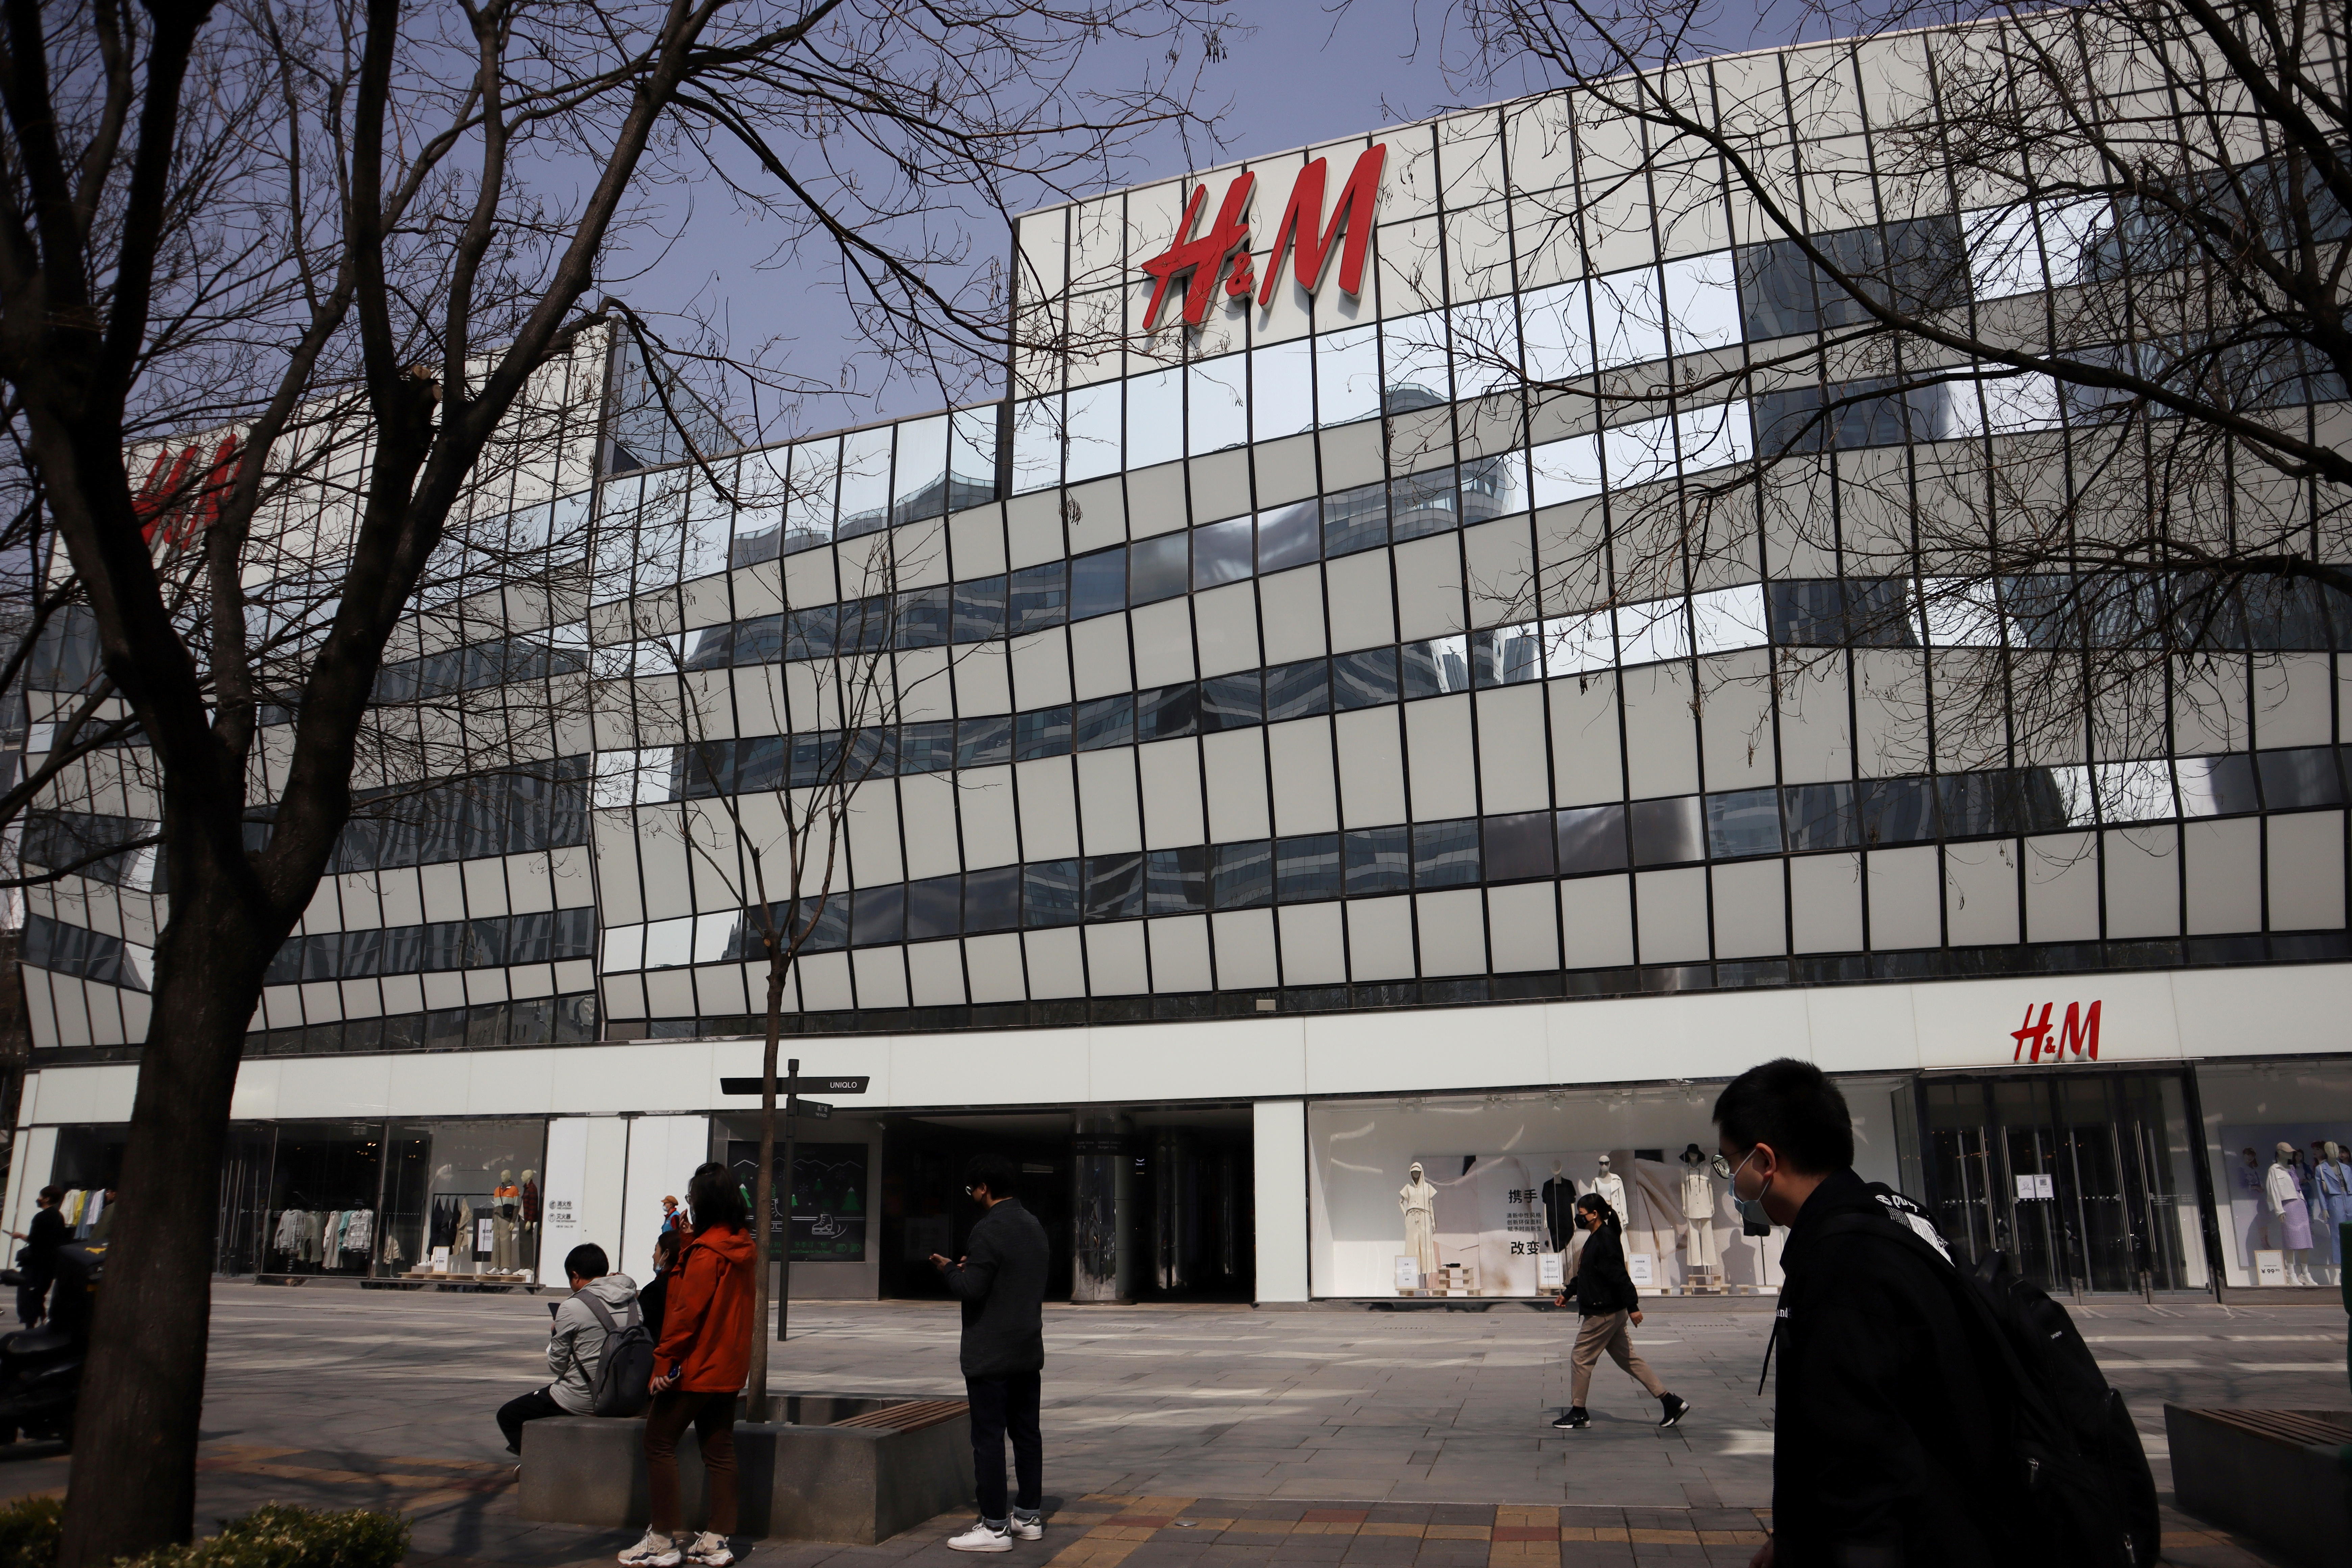 People walk past a store of the Swedish fashion retailer H&M at a shopping complex in Beijing, China March 25, 2021. REUTERS/Florence Lo/File Photo